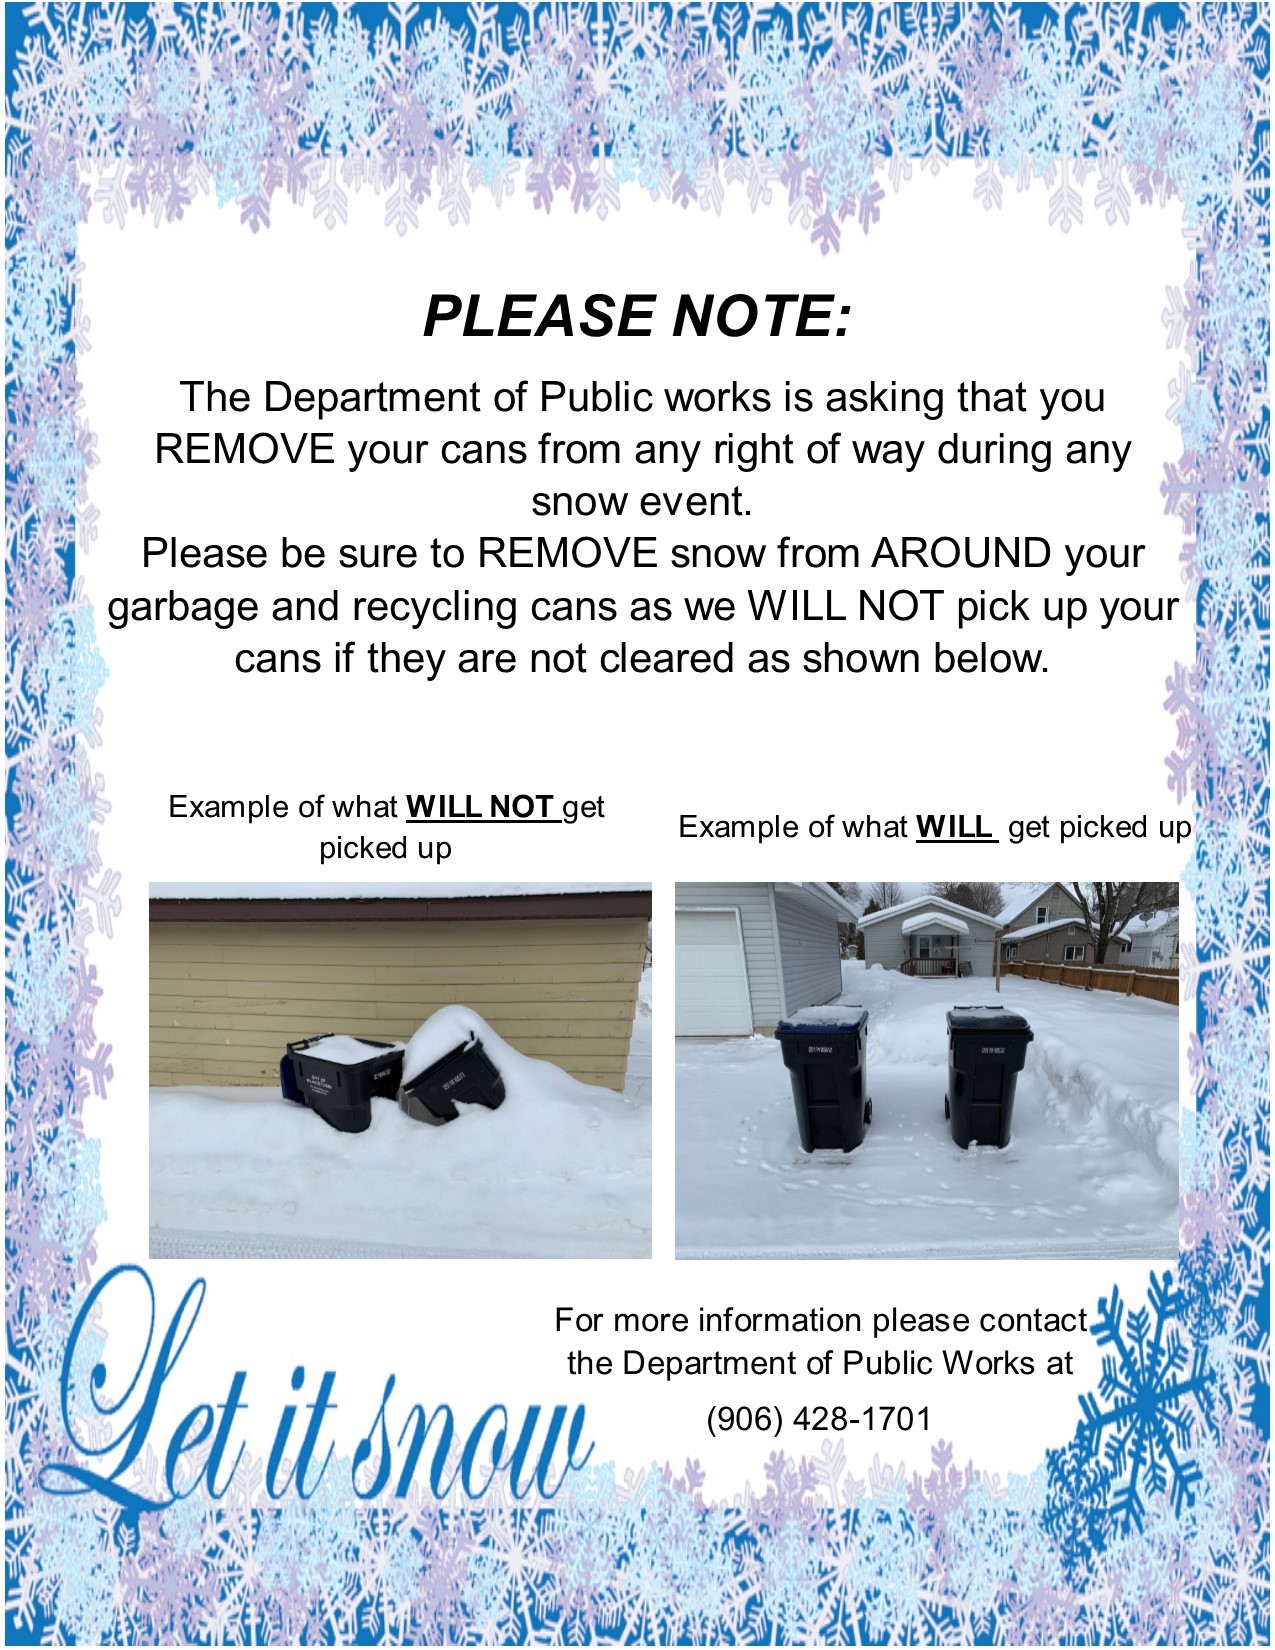 Snow removal around garbage cans